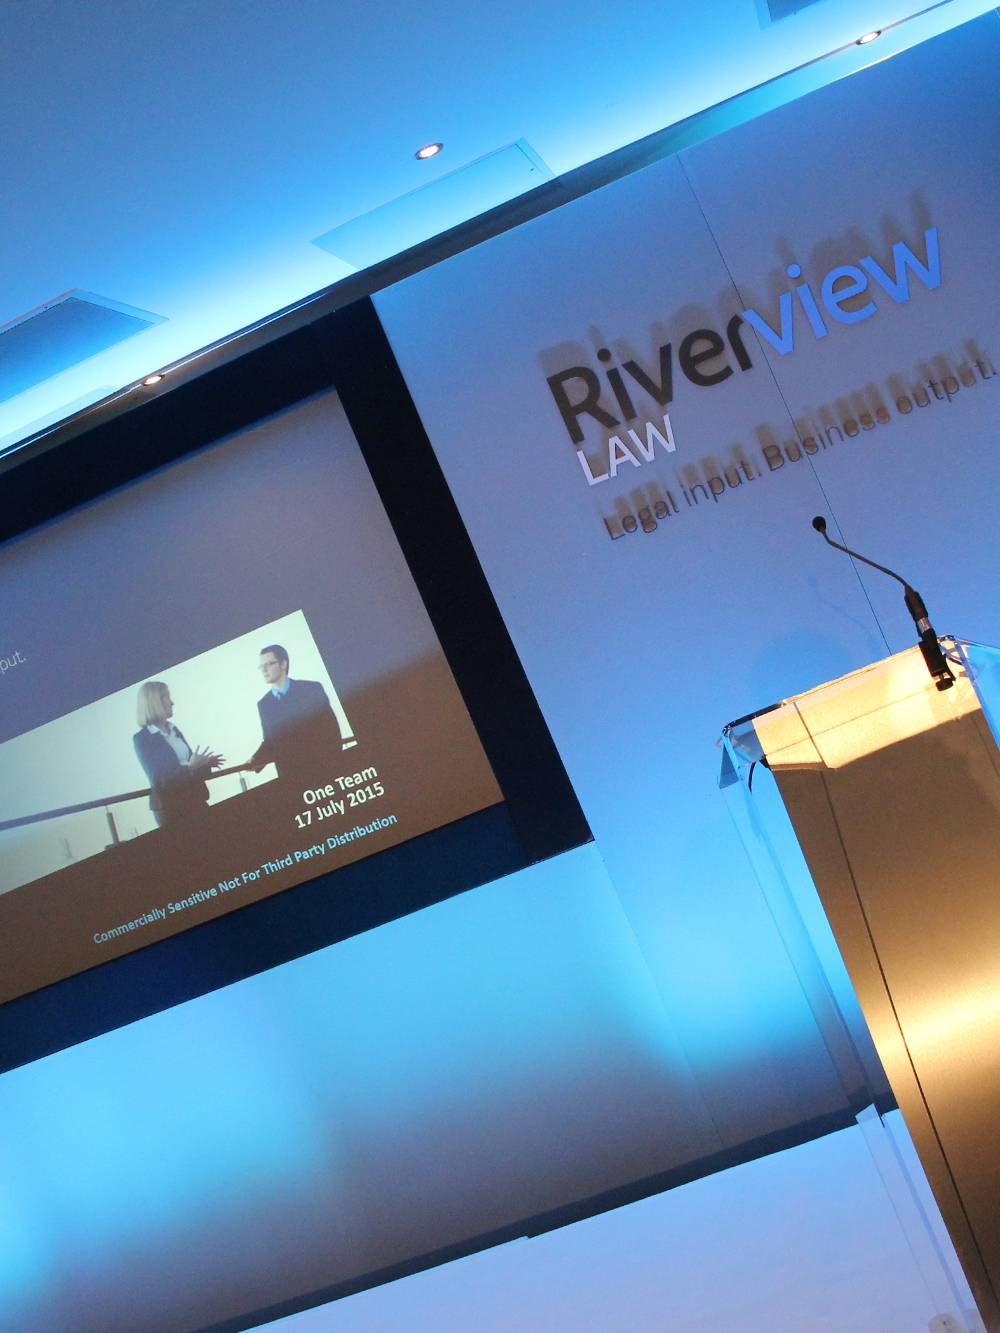 We offer conference stage sets, branding and lecterns alongside our AV hire services in Manchester.